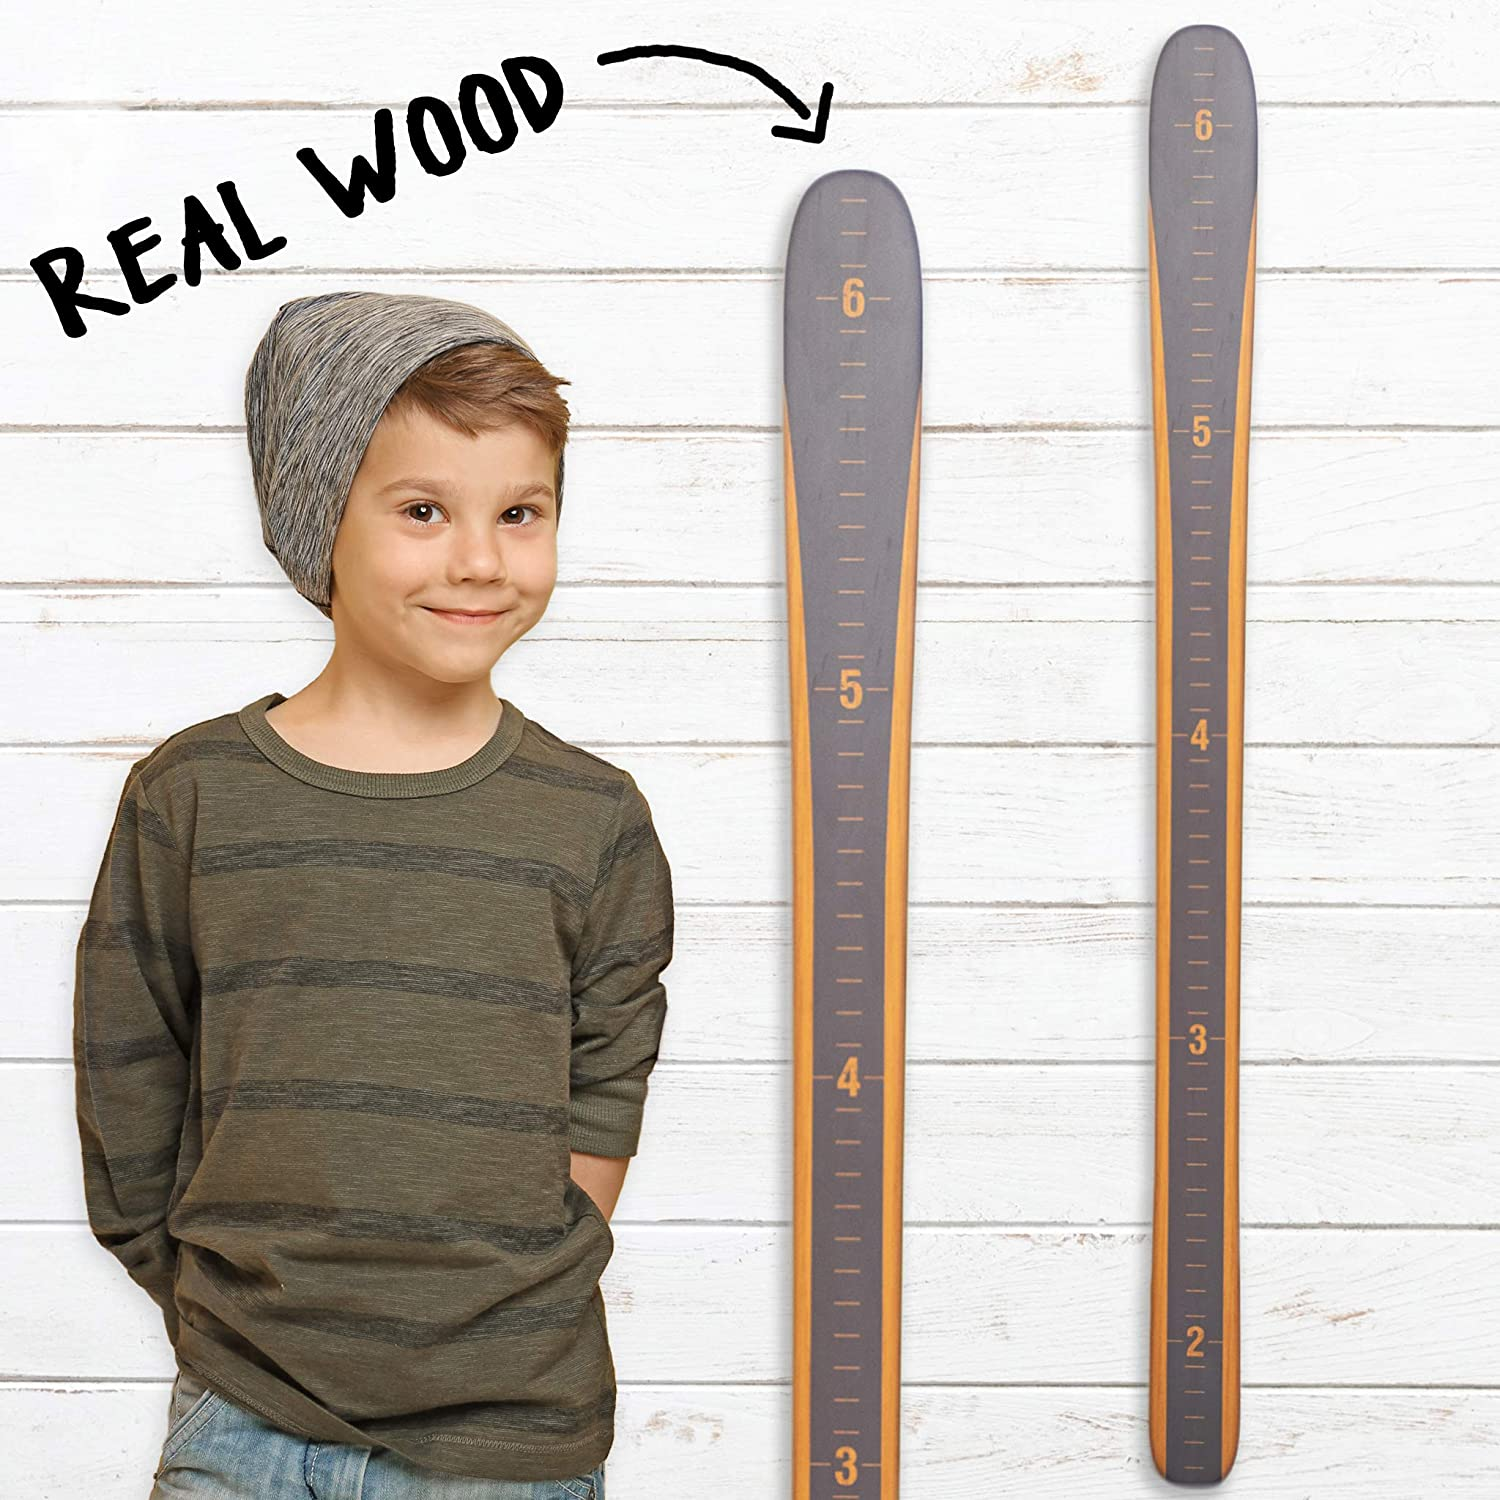 Vintage Gray Wall Hanging Wood Height Chart for Measuring Kids Girl Baby Skis Wooden Ski Growth Chart Children Modern Vintage Growth Chart Art Boys Ski Gifts